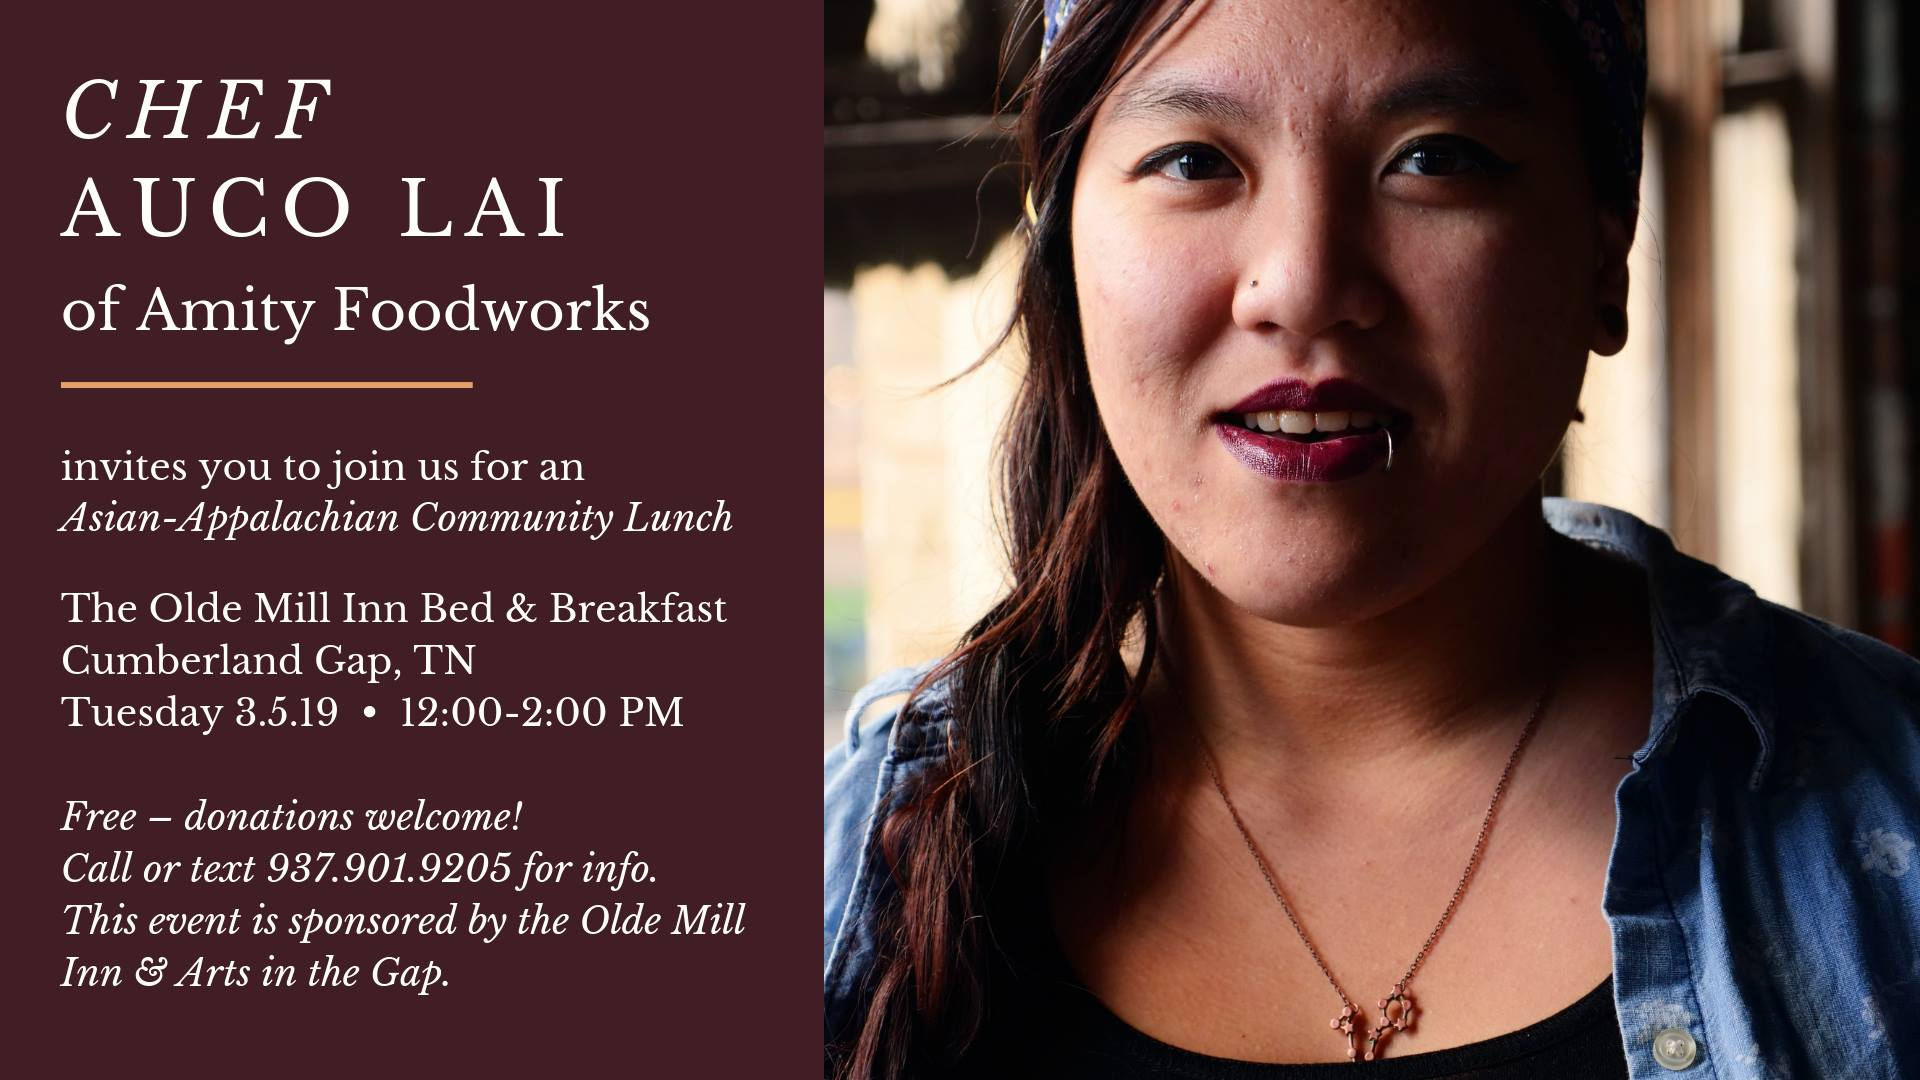 Join The LEE Initiative fellow and founder of Amity Foodworks, Chef AuCo Lai, for a community lunch at The Olde Mill Inn Bed and Breakfast on Tuesday March 5, 12pm! AuCo will bring her flair and knowledge of regional foodways and international cuisine to this fun, informal pop-up event: a traditional Appalachian soup-beans meal prepared with Asian ingredients. This event is free and open to the public!   https://www.facebook.com/events/383141459177715/